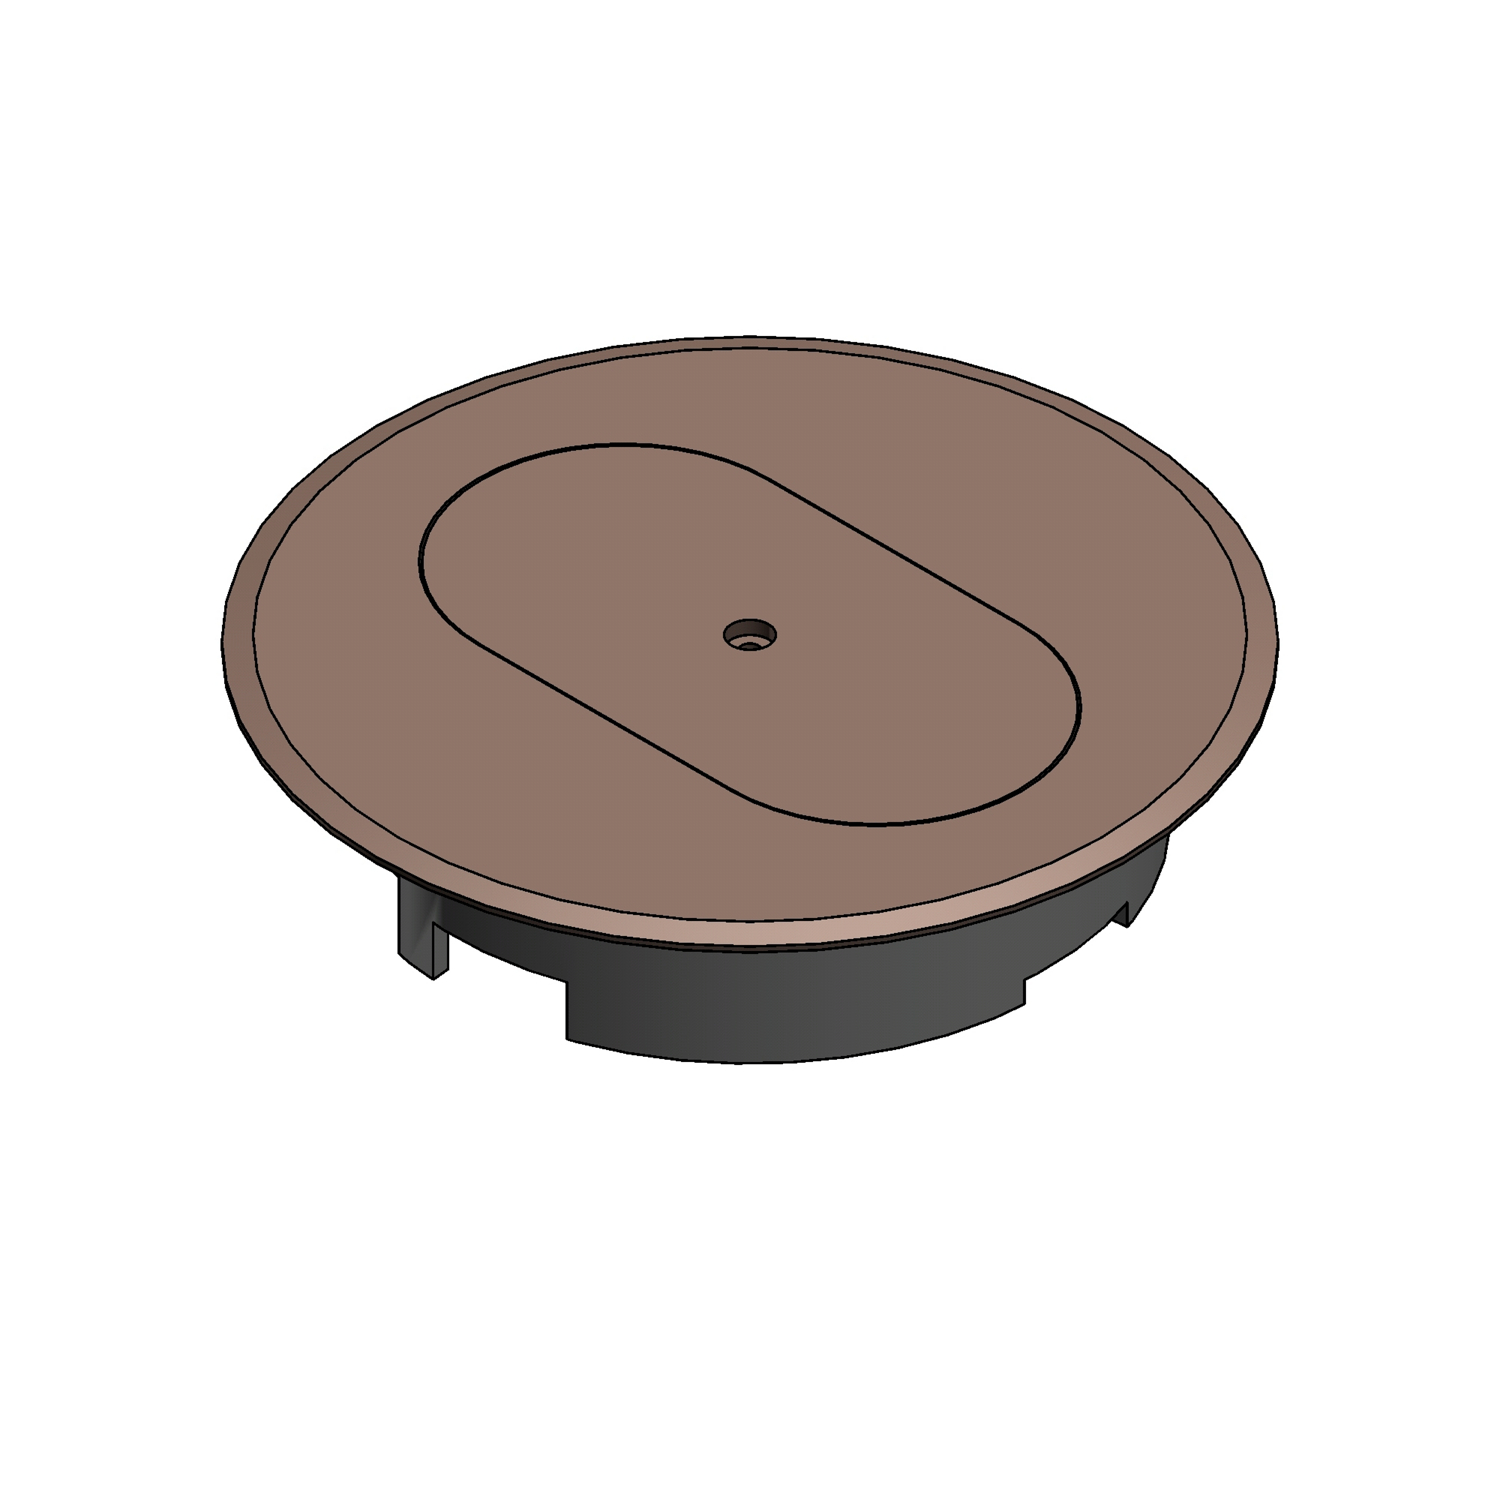 Carlon E97DSC Floor Box Cover, 5.69 in Dia, Thermoplastic